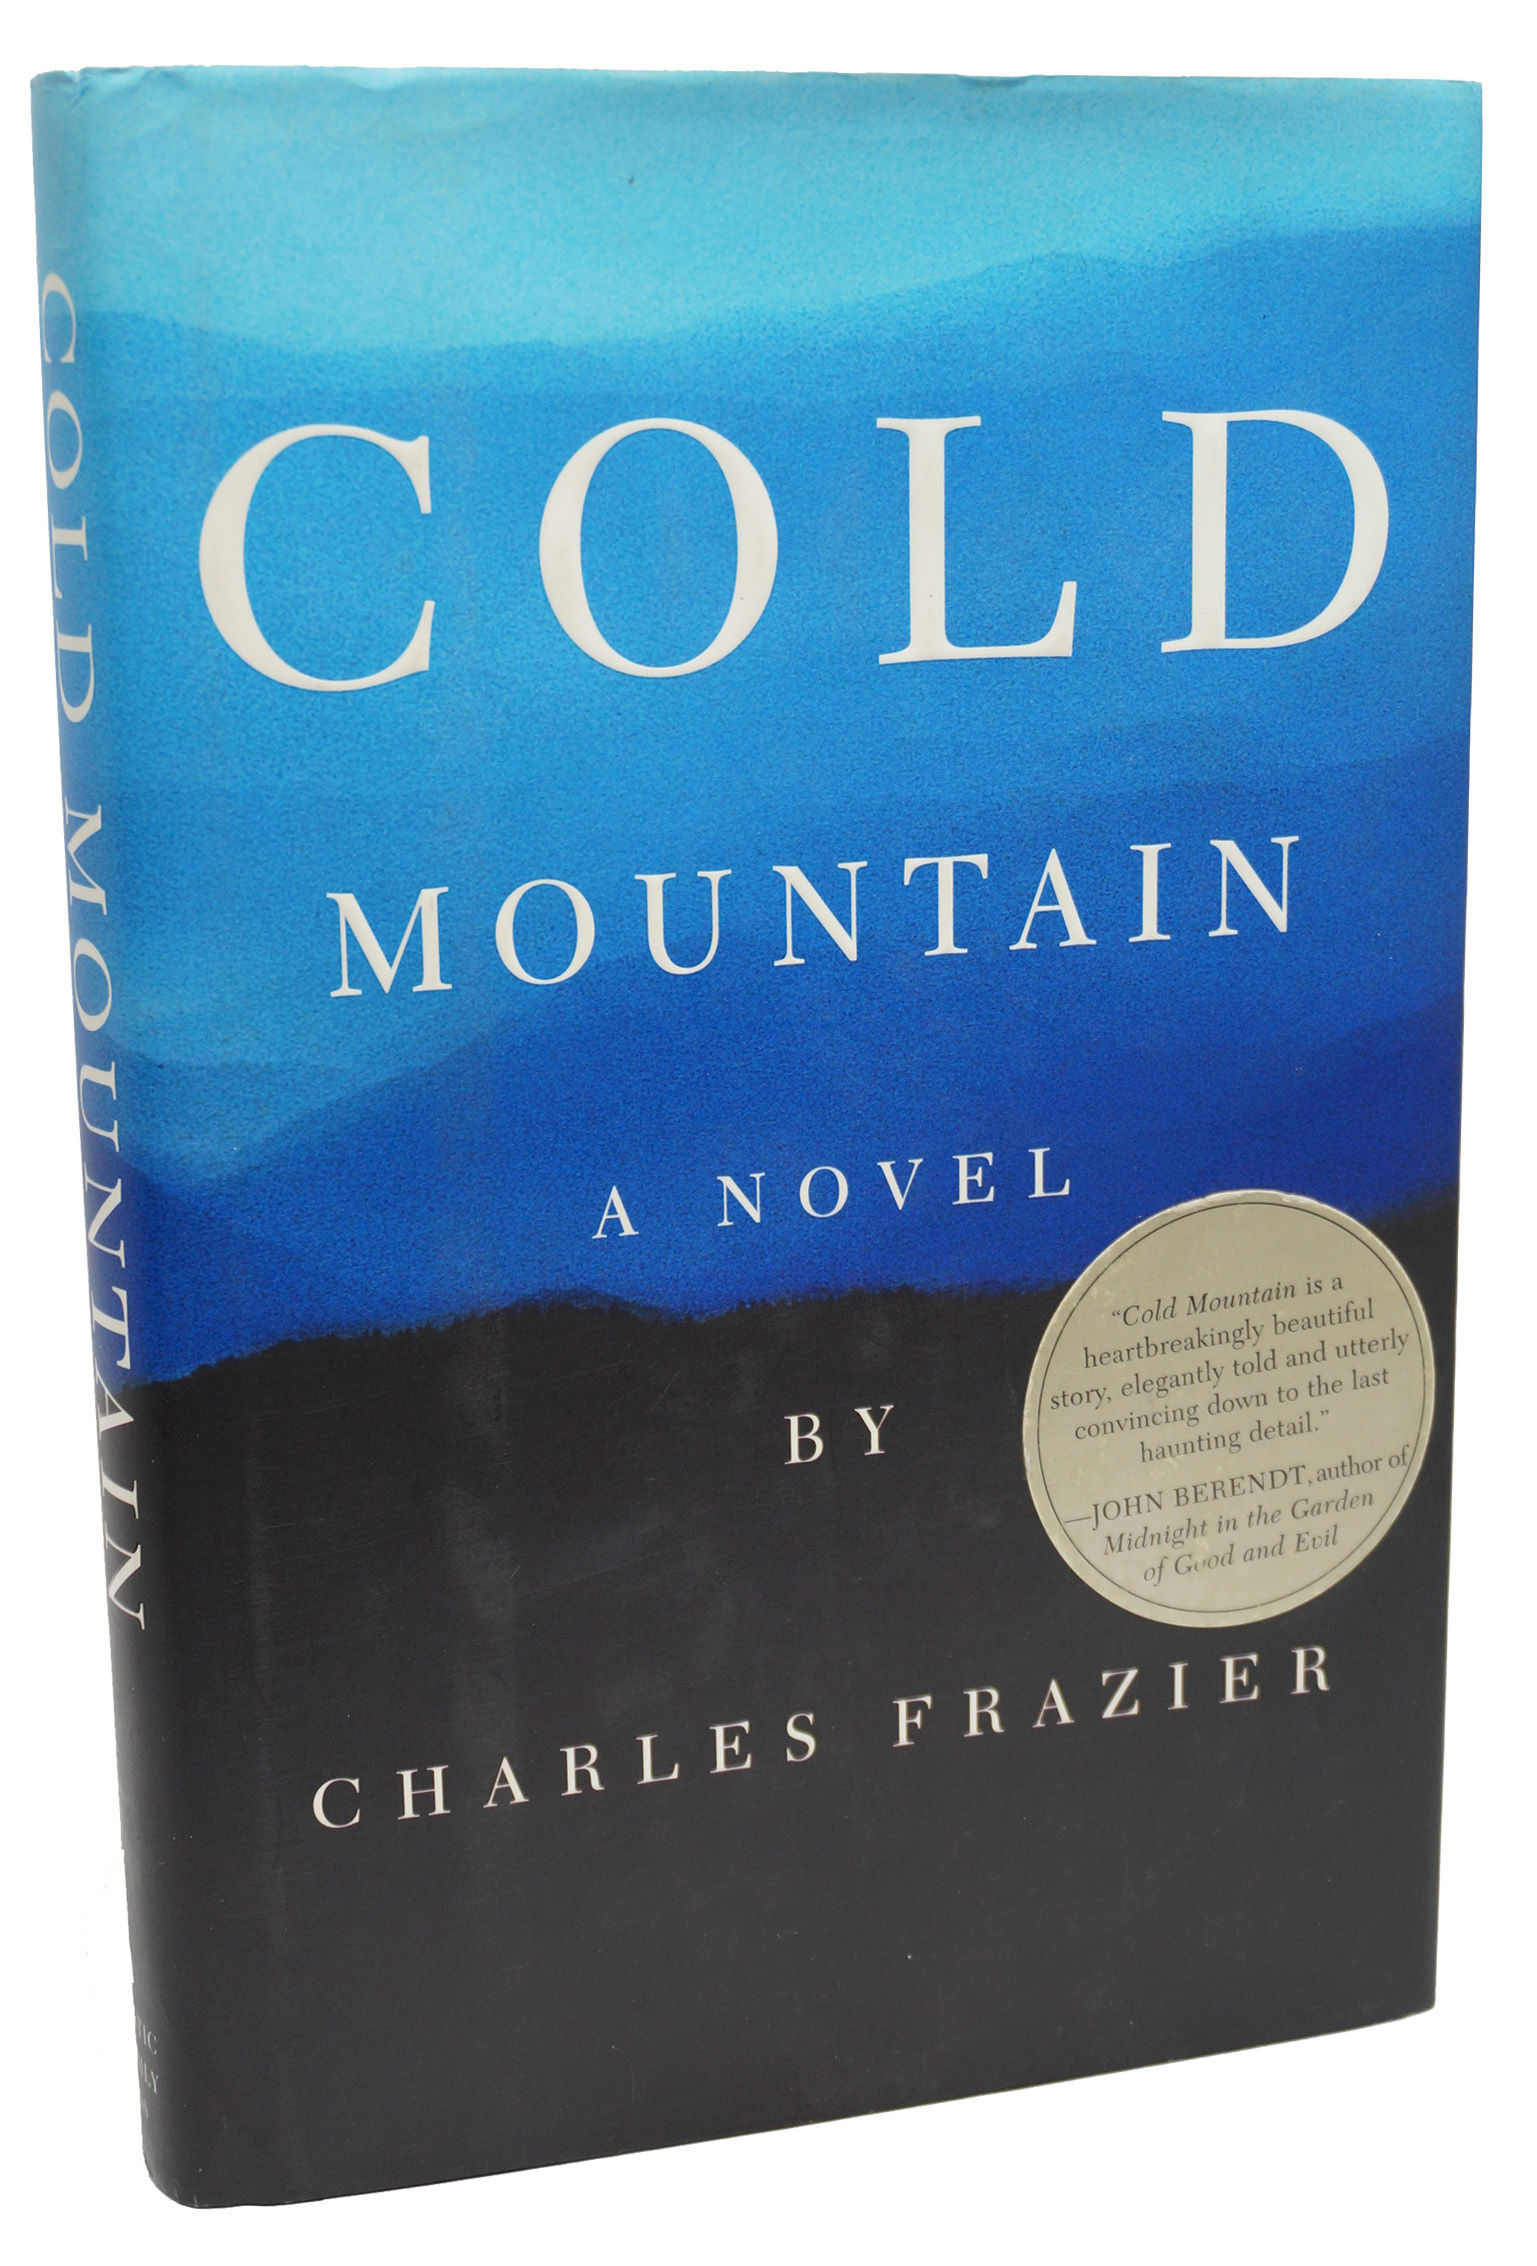 cold mountain by charles frazier essay A new novel of the civil war and its aftermath from the author of cold mountain by charles frazier fiction thirteen moons by charles frazier fiction.